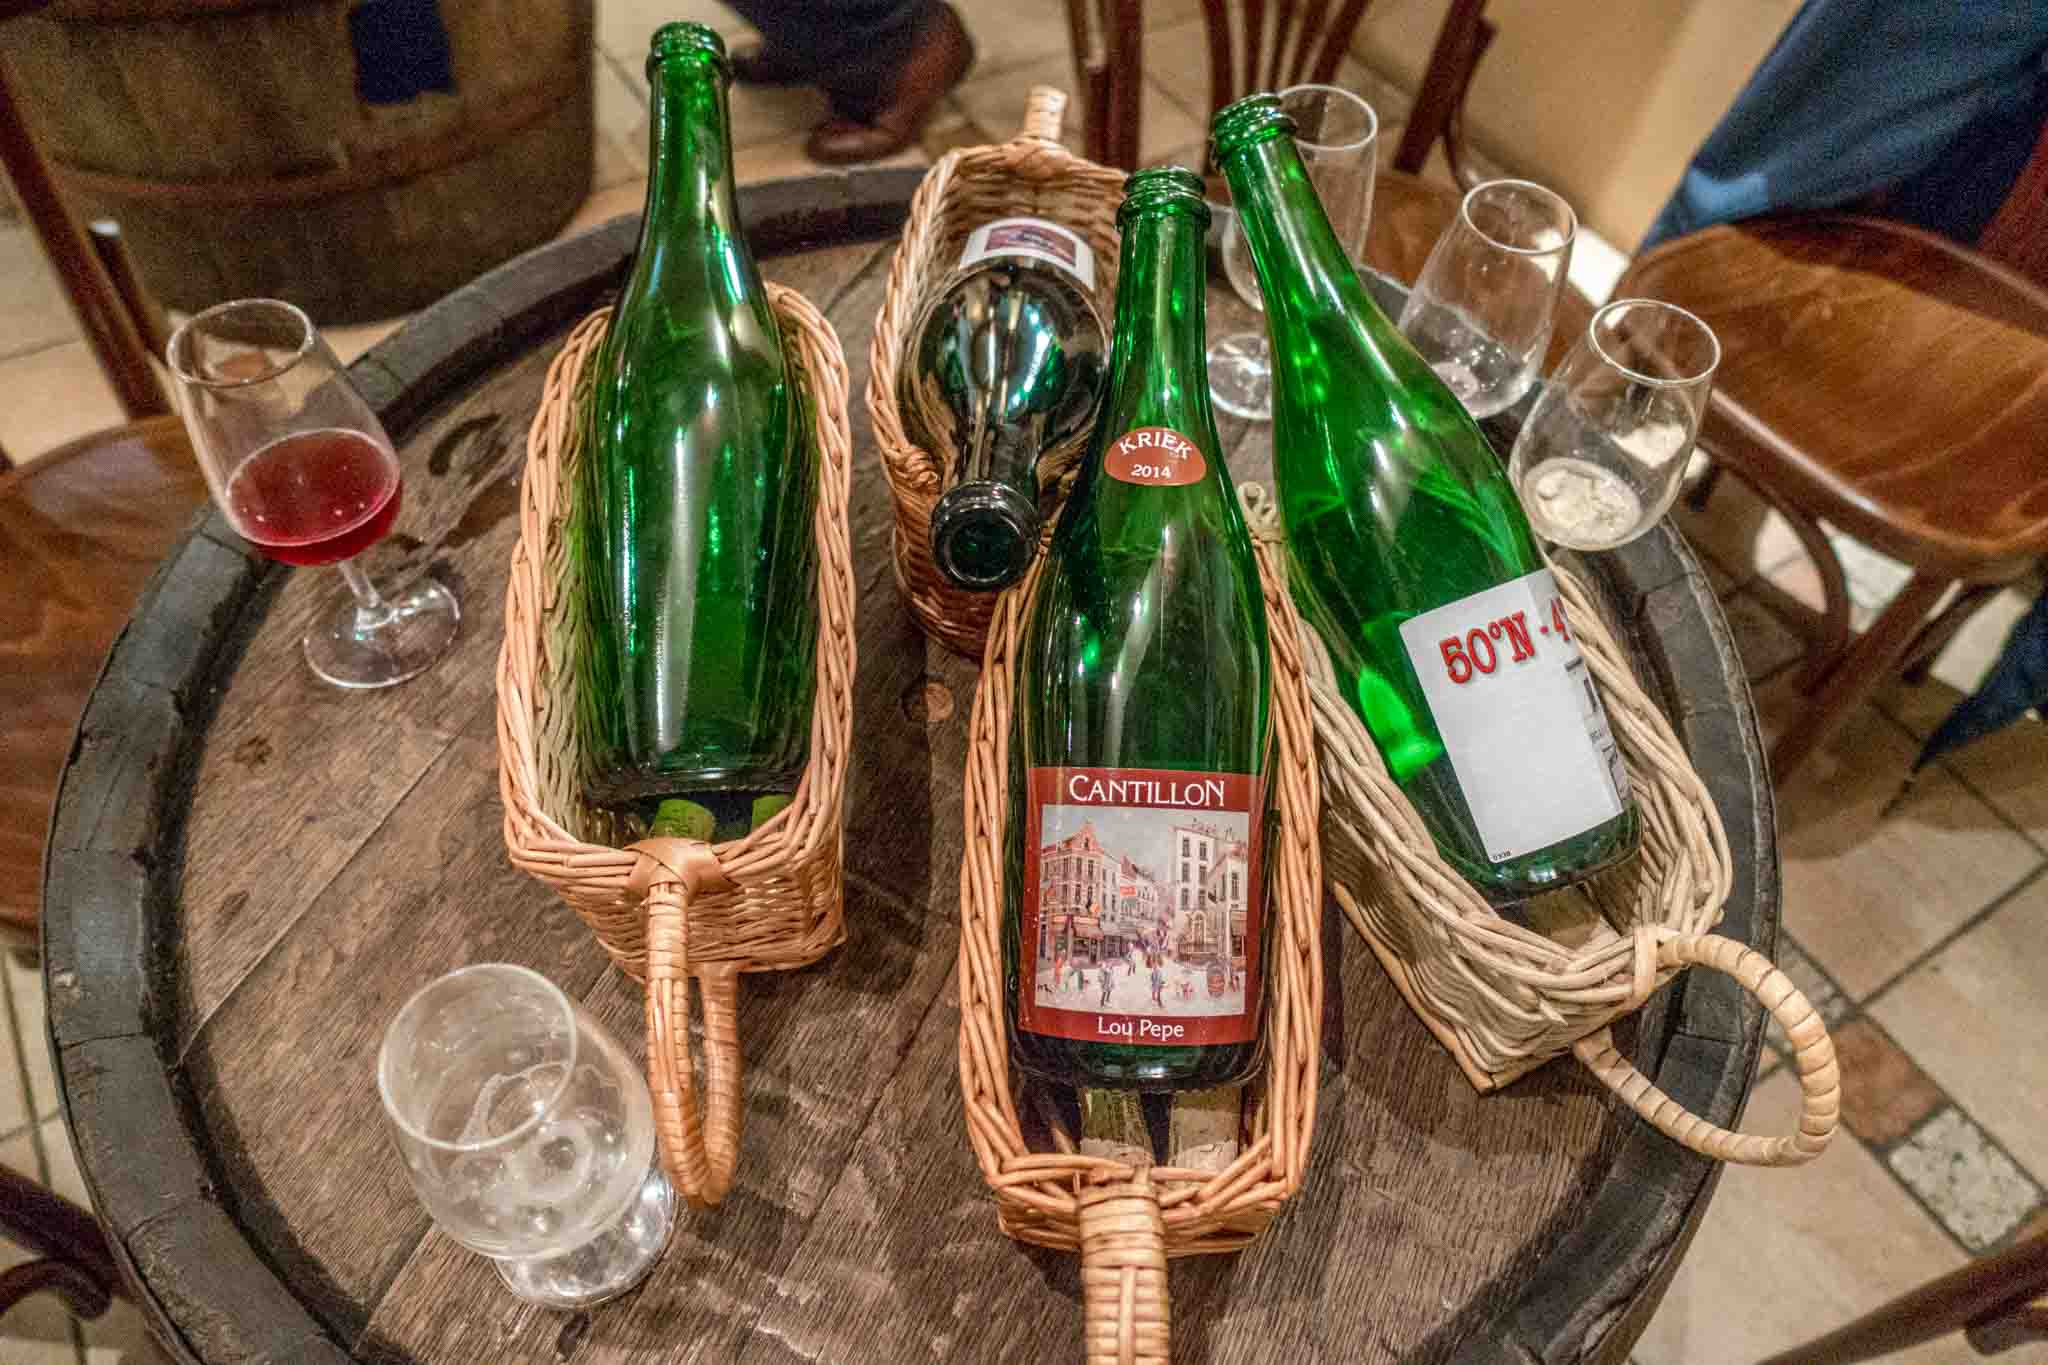 Beer bottles and glasses at Cantillon Brewery